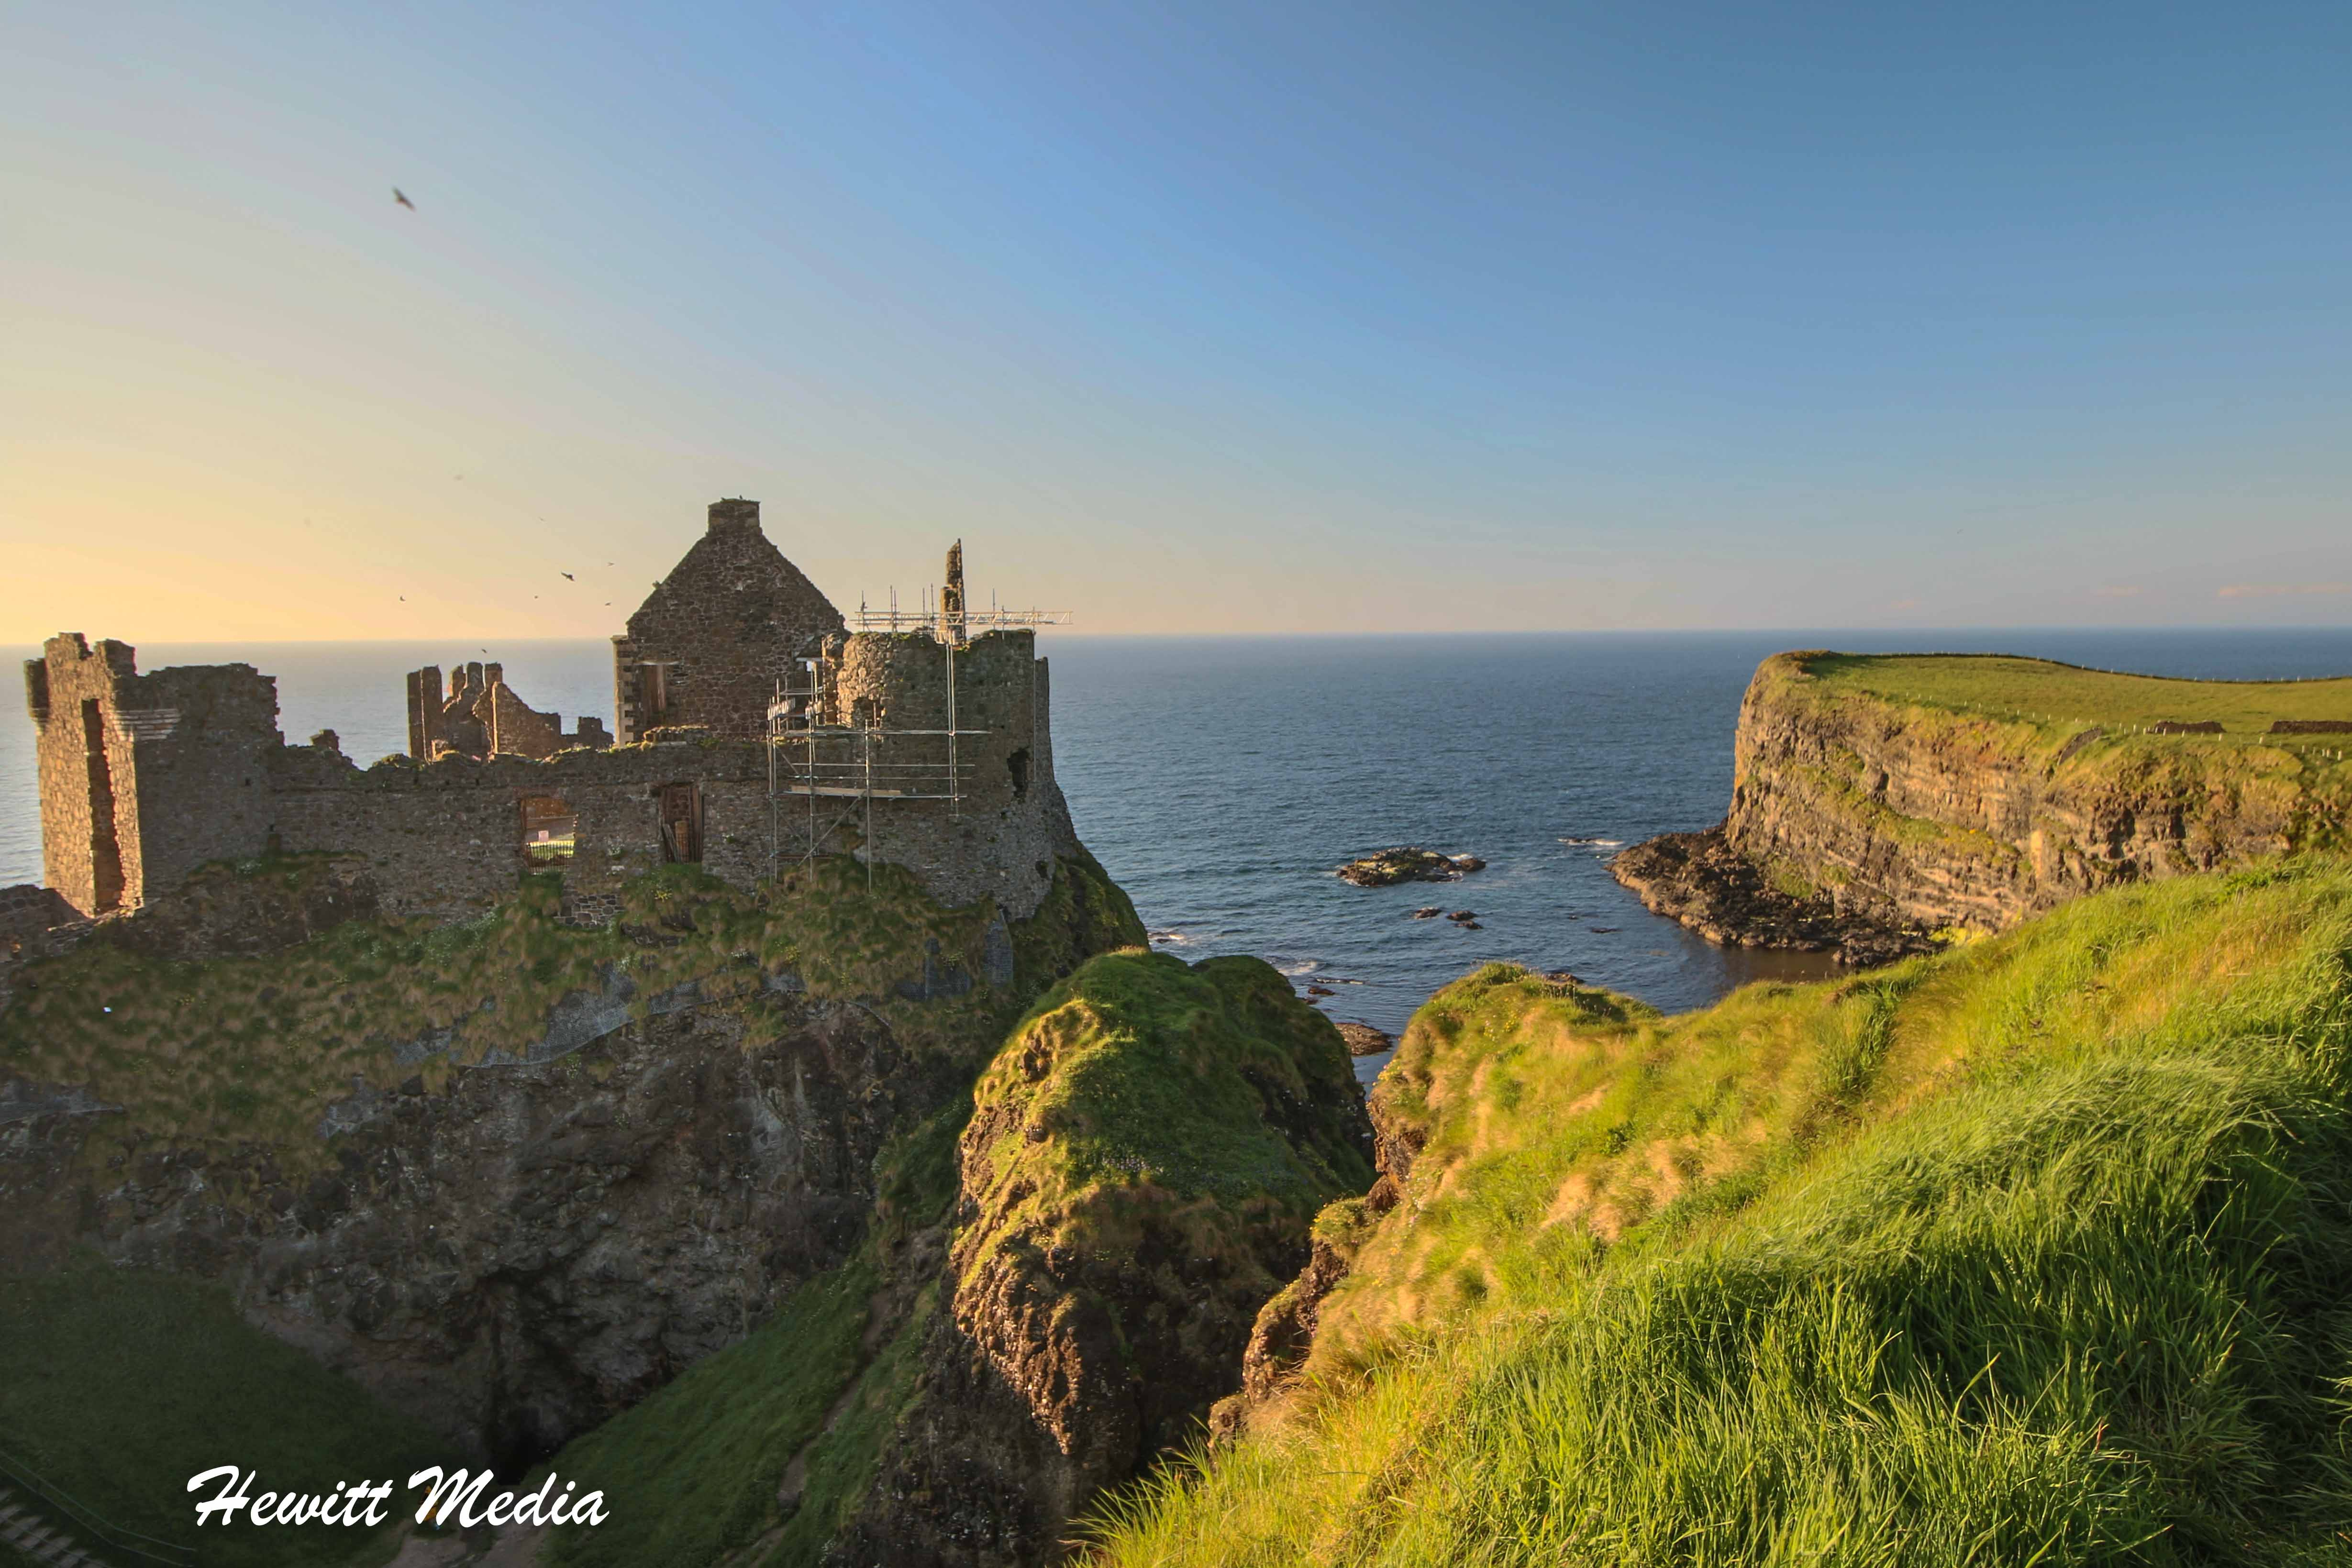 The Dunluce Castle in Northern Ireland